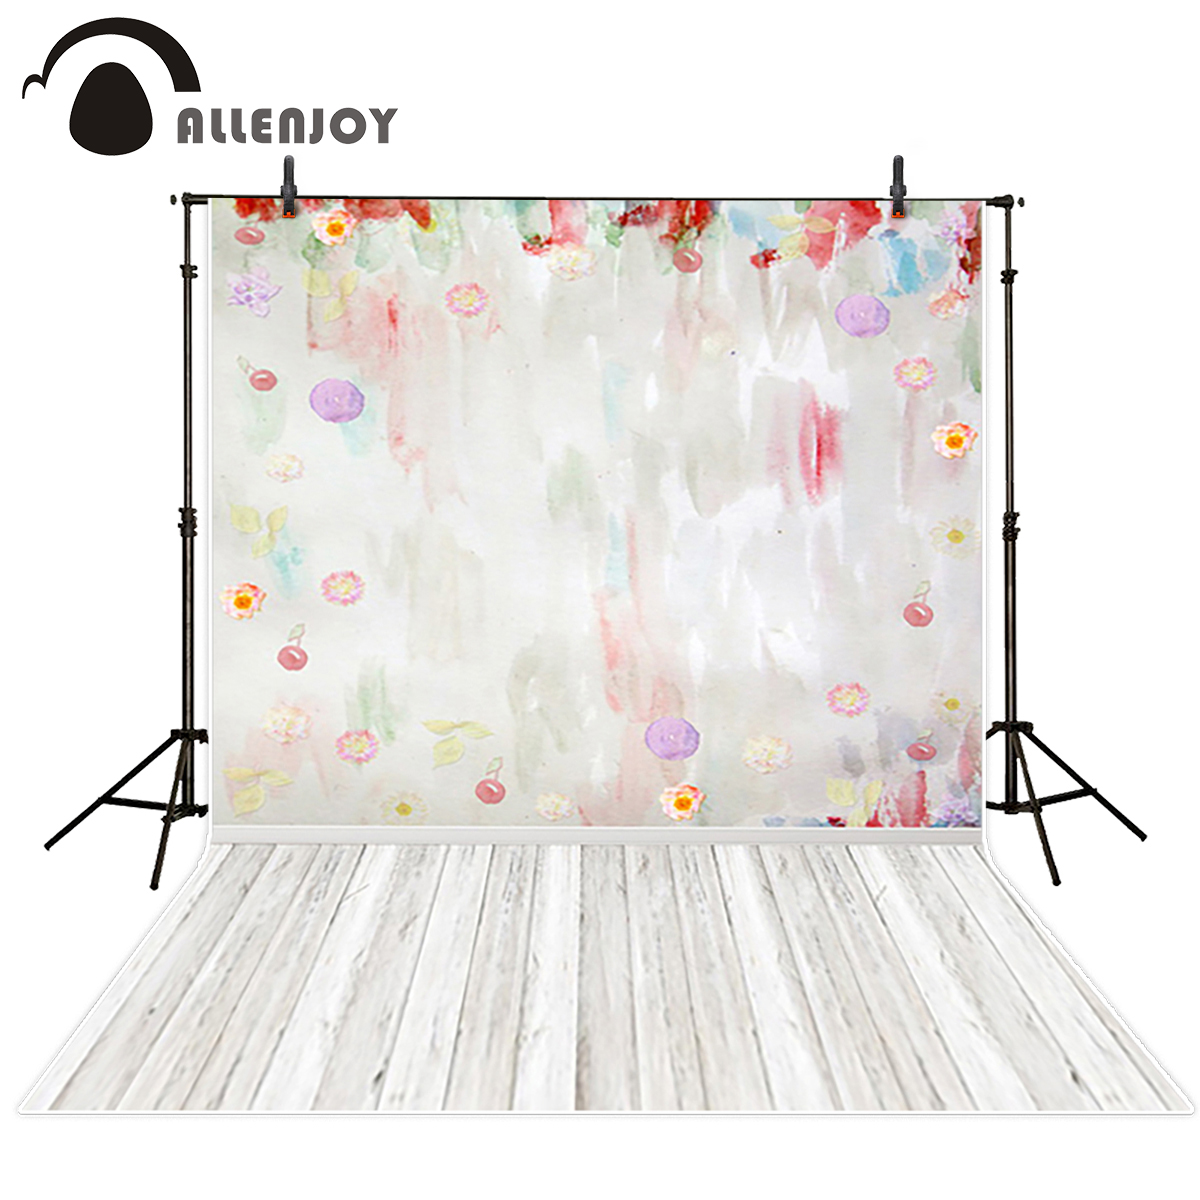 Allenjoy vinyl backdrops for photography Flowers Fantasy Red Oil painting with white wooden floor Background for taking photos